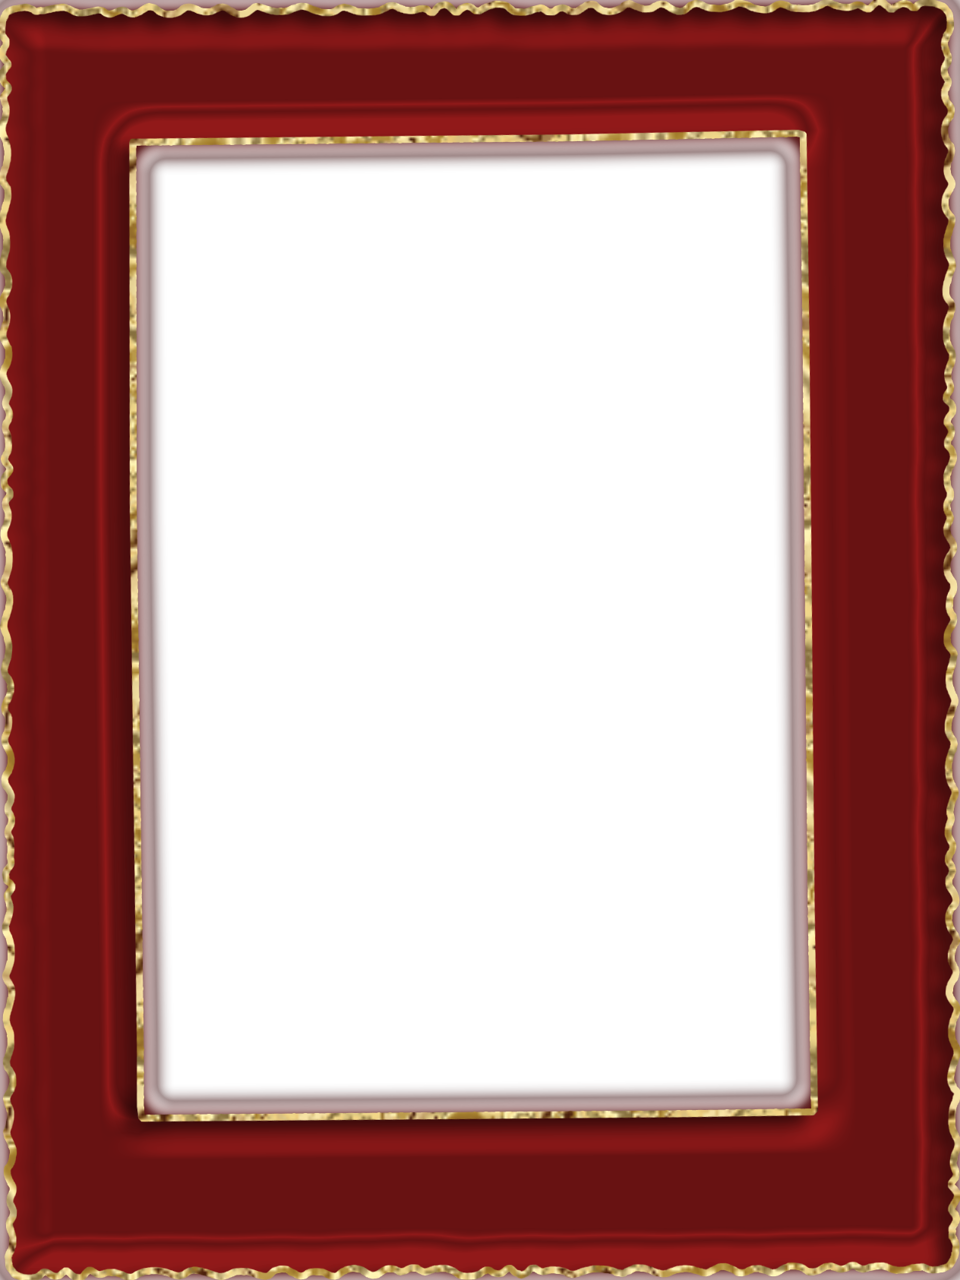 Transparent and gold gallery. Red frame png